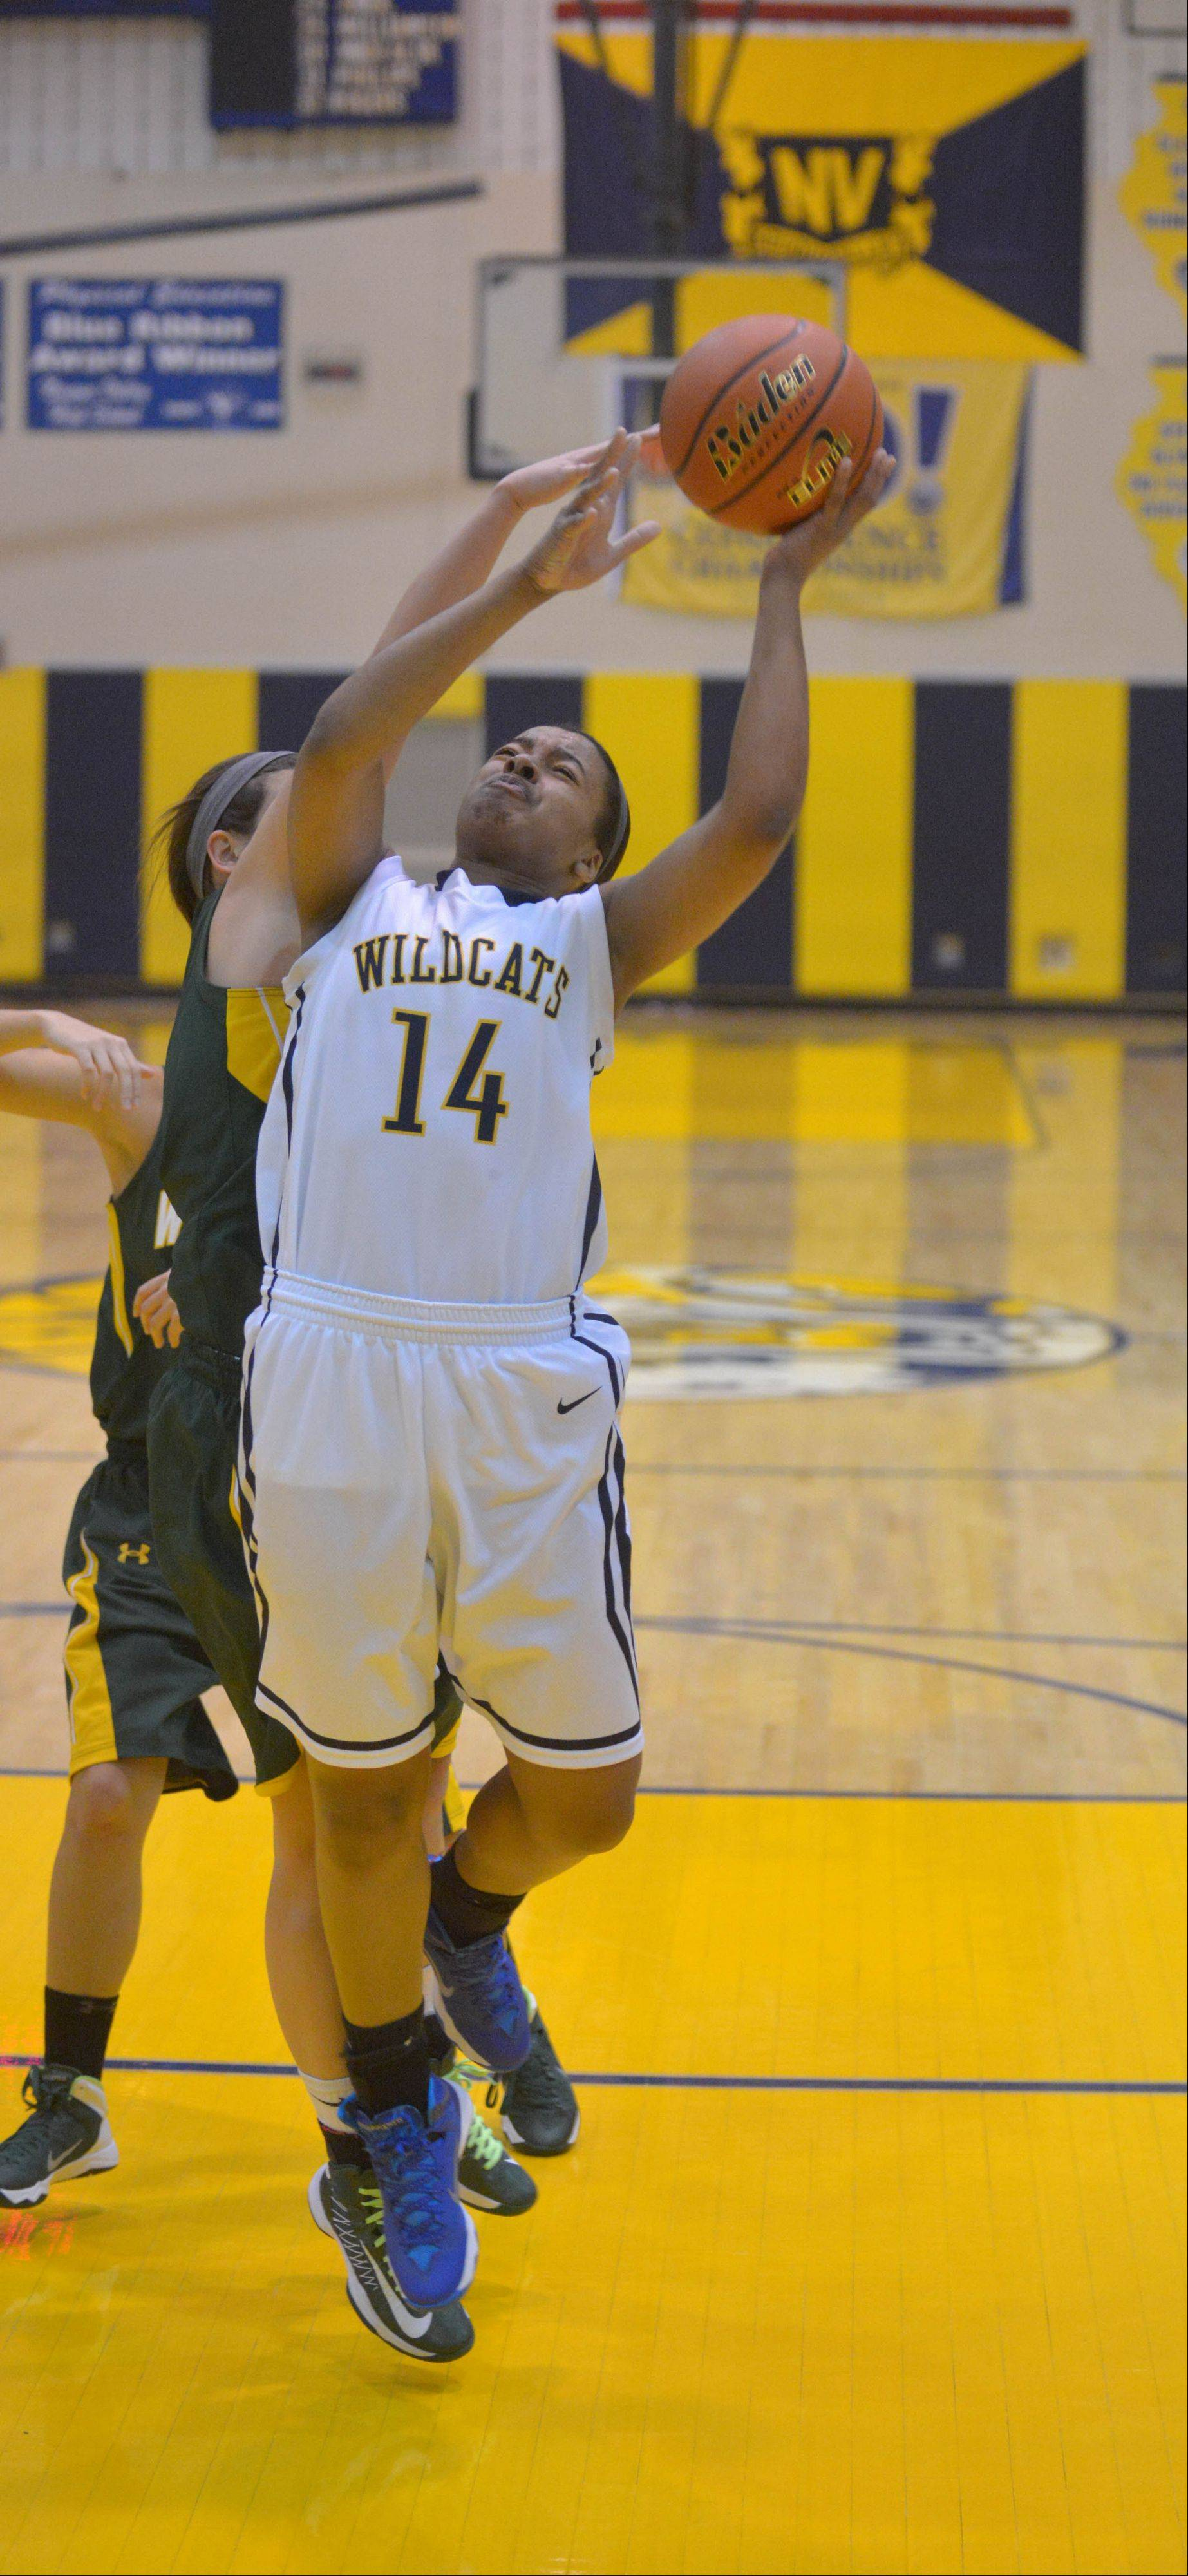 Najee Smith of Neuqua takes one to the net during the Waubonsie Valley at Neuqua Valley girls basketball game Saturday.